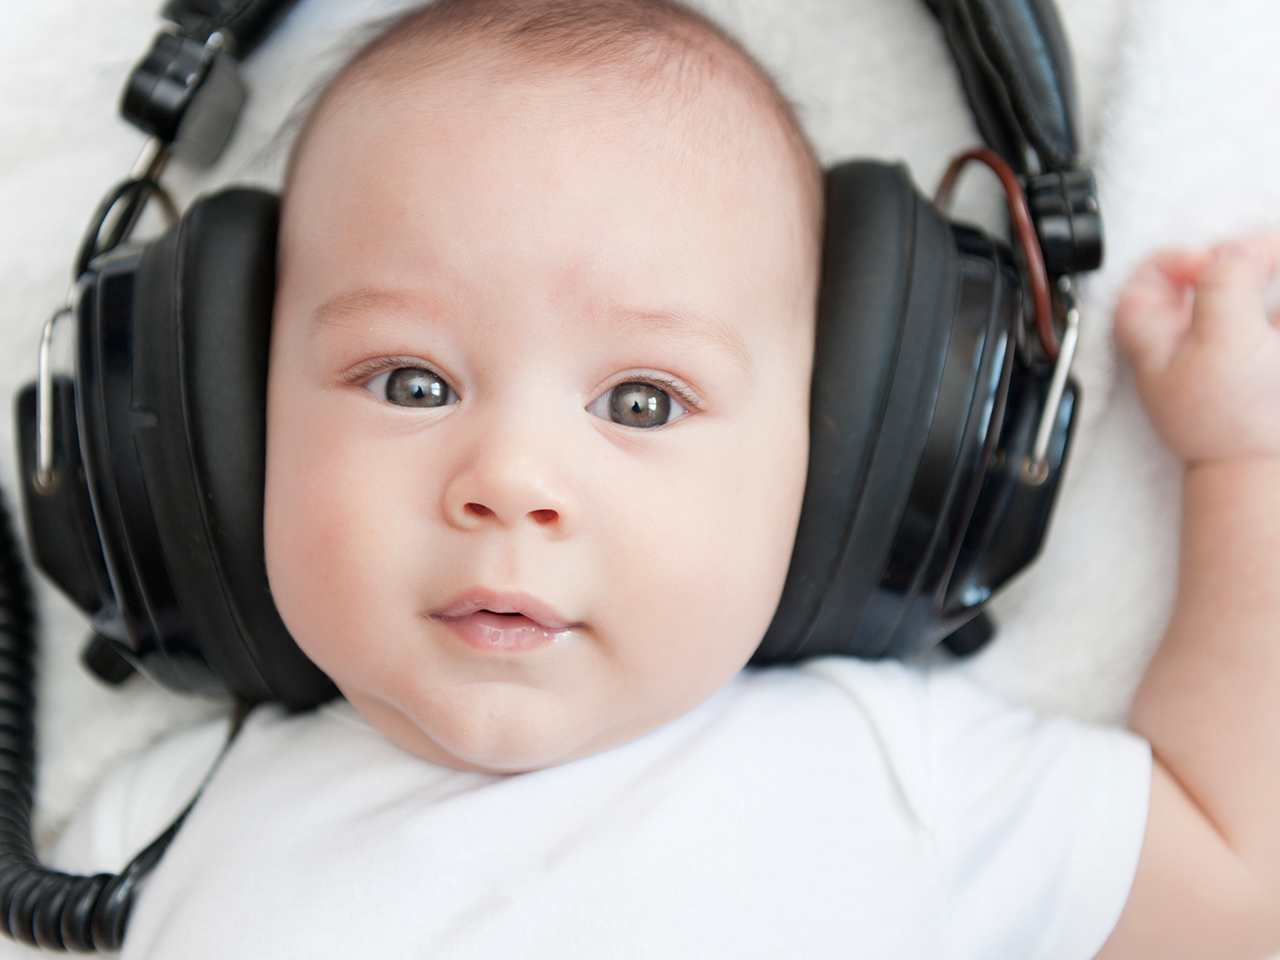 Baby wearing headphones too big for its head